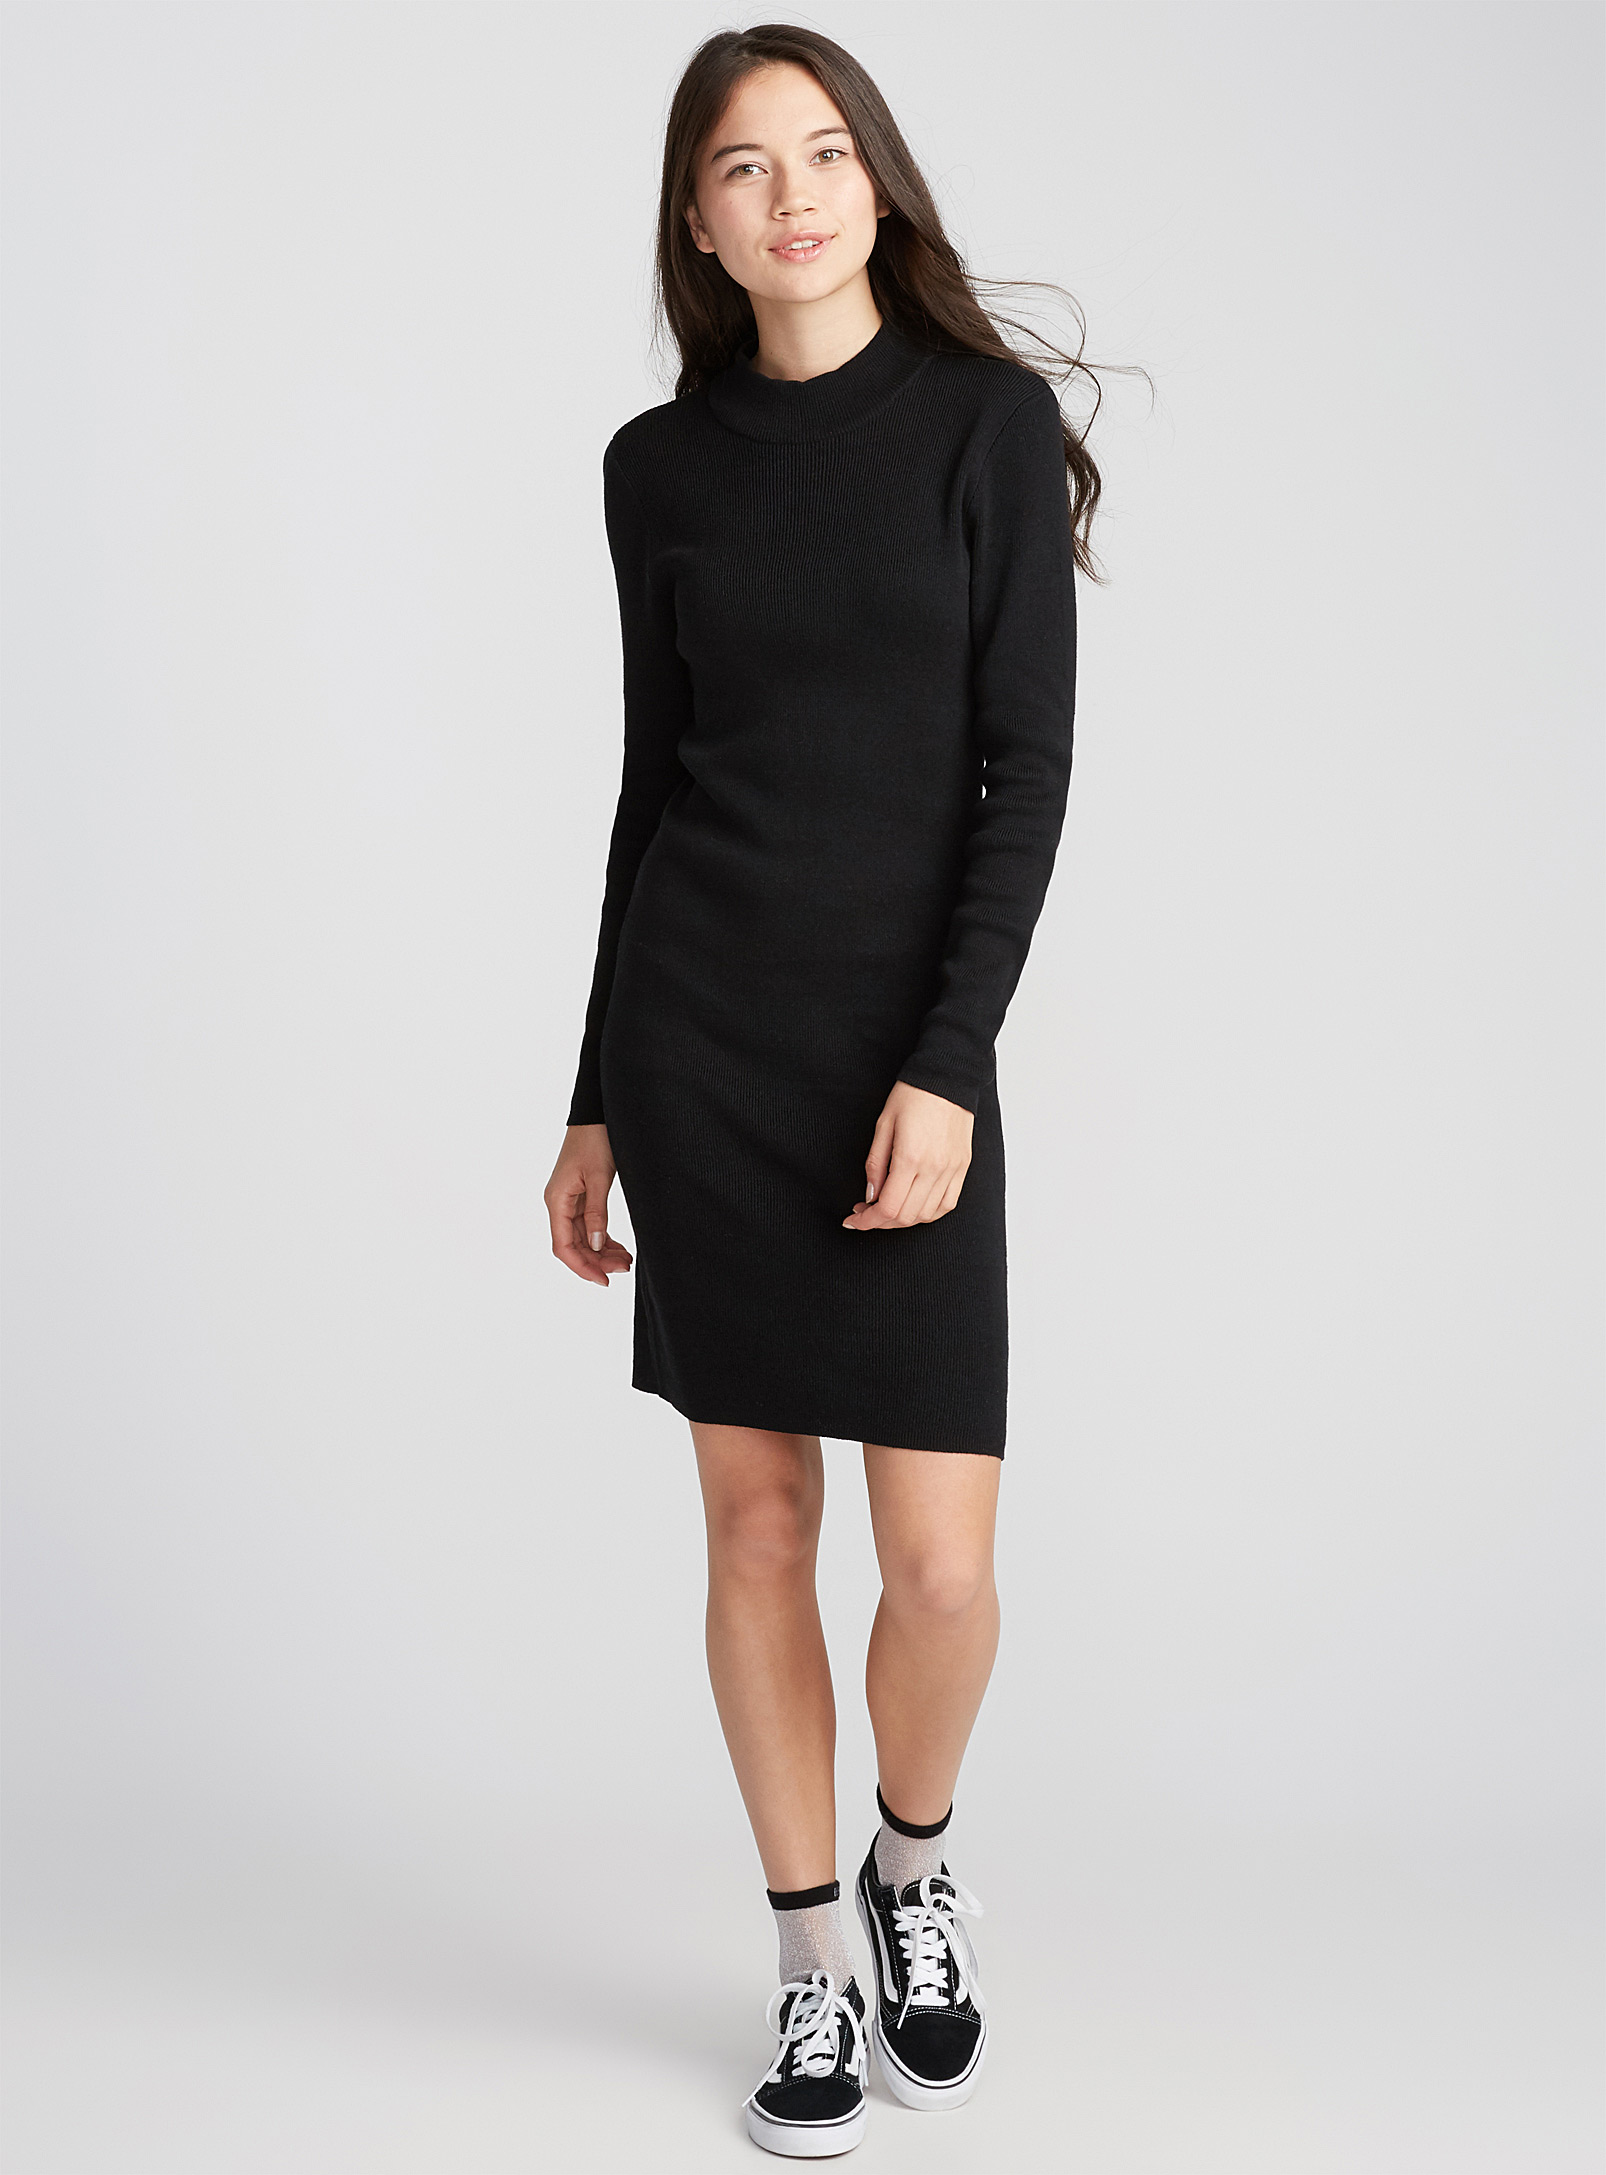 robe noire tricot, simple, simons